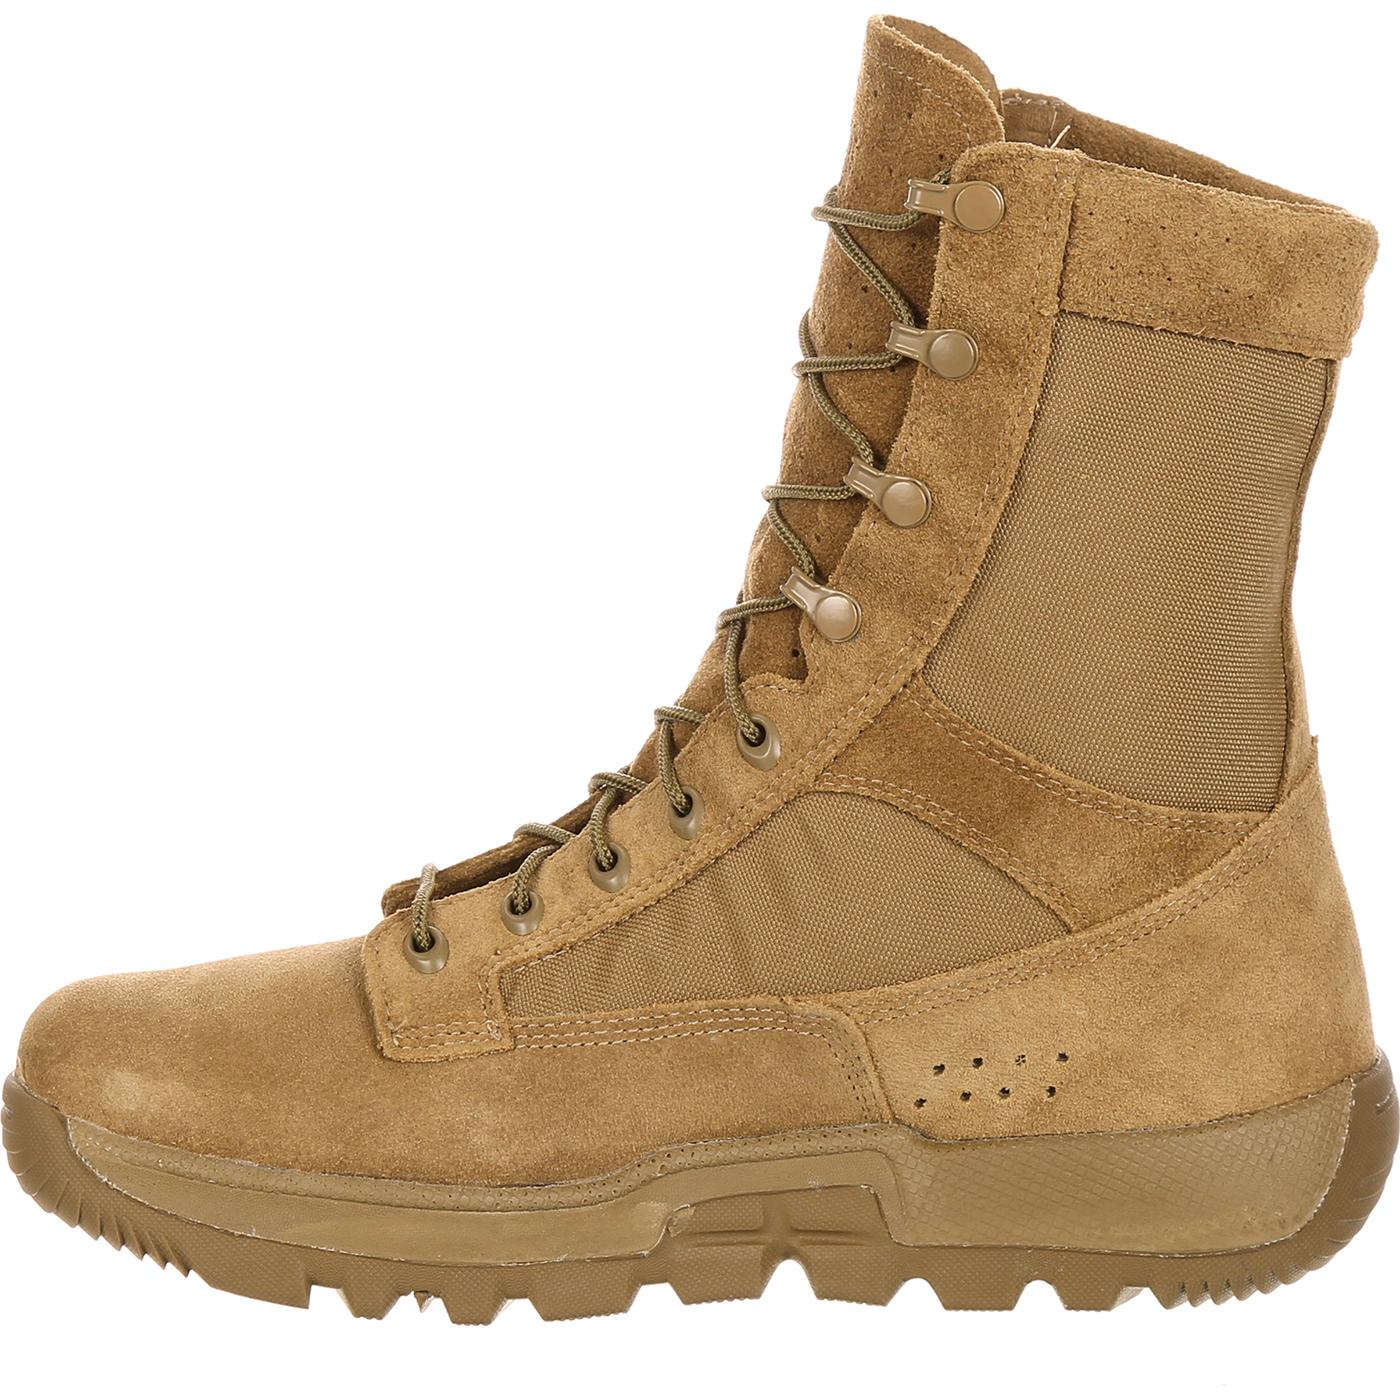 Rocky Lightweight Commercial Military Boot, style #RKC042